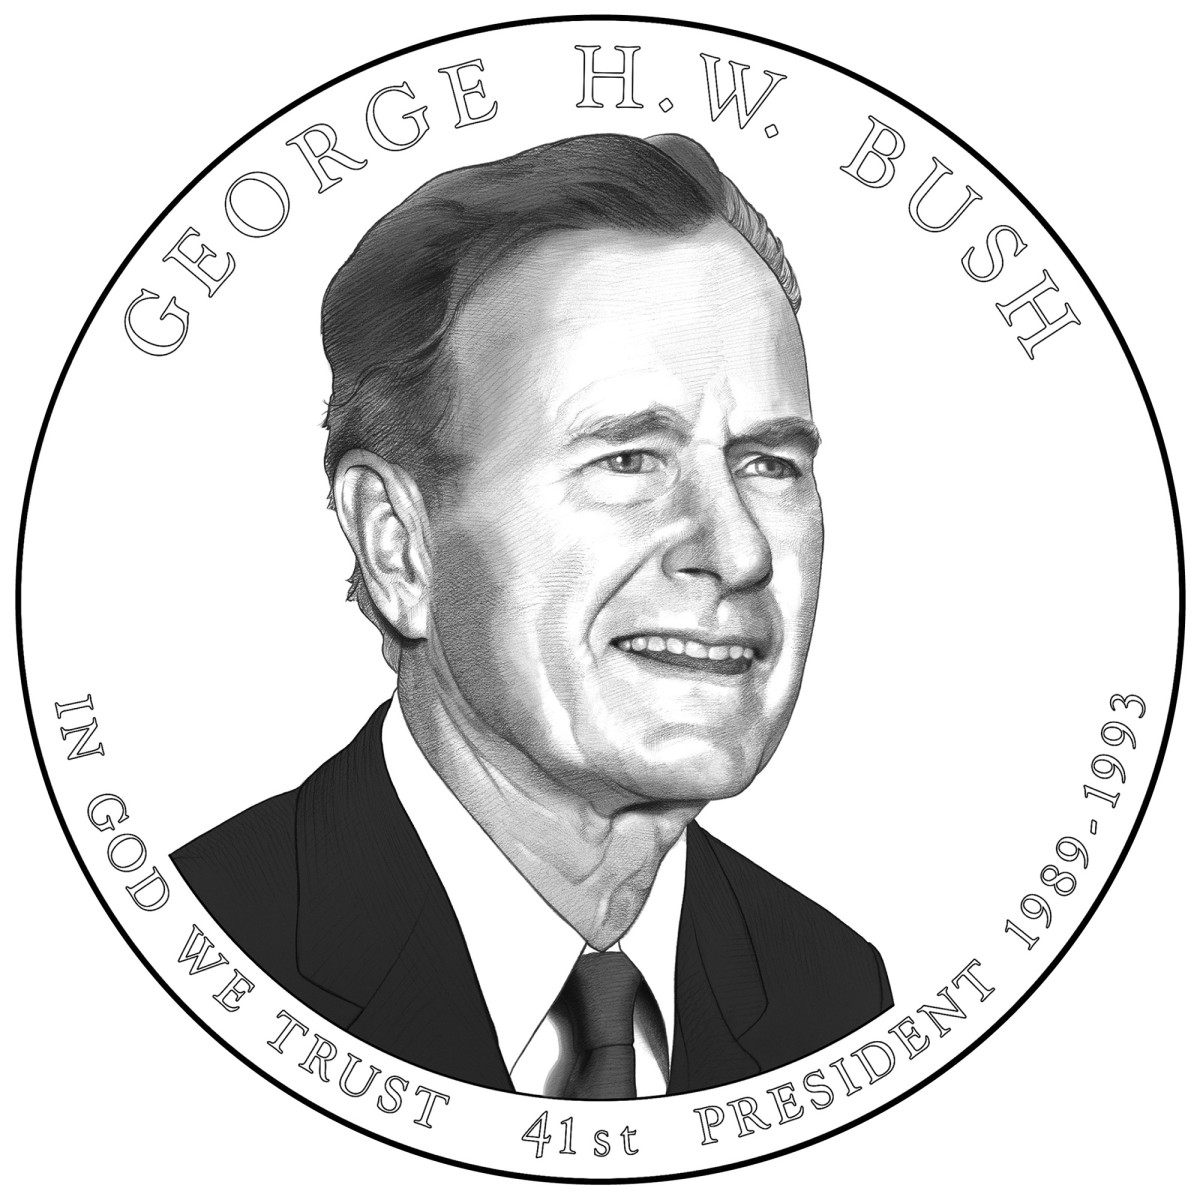 The obverse design for the George W. Bush Presidential $1 coin. (All images courtesy U.S. Mint)